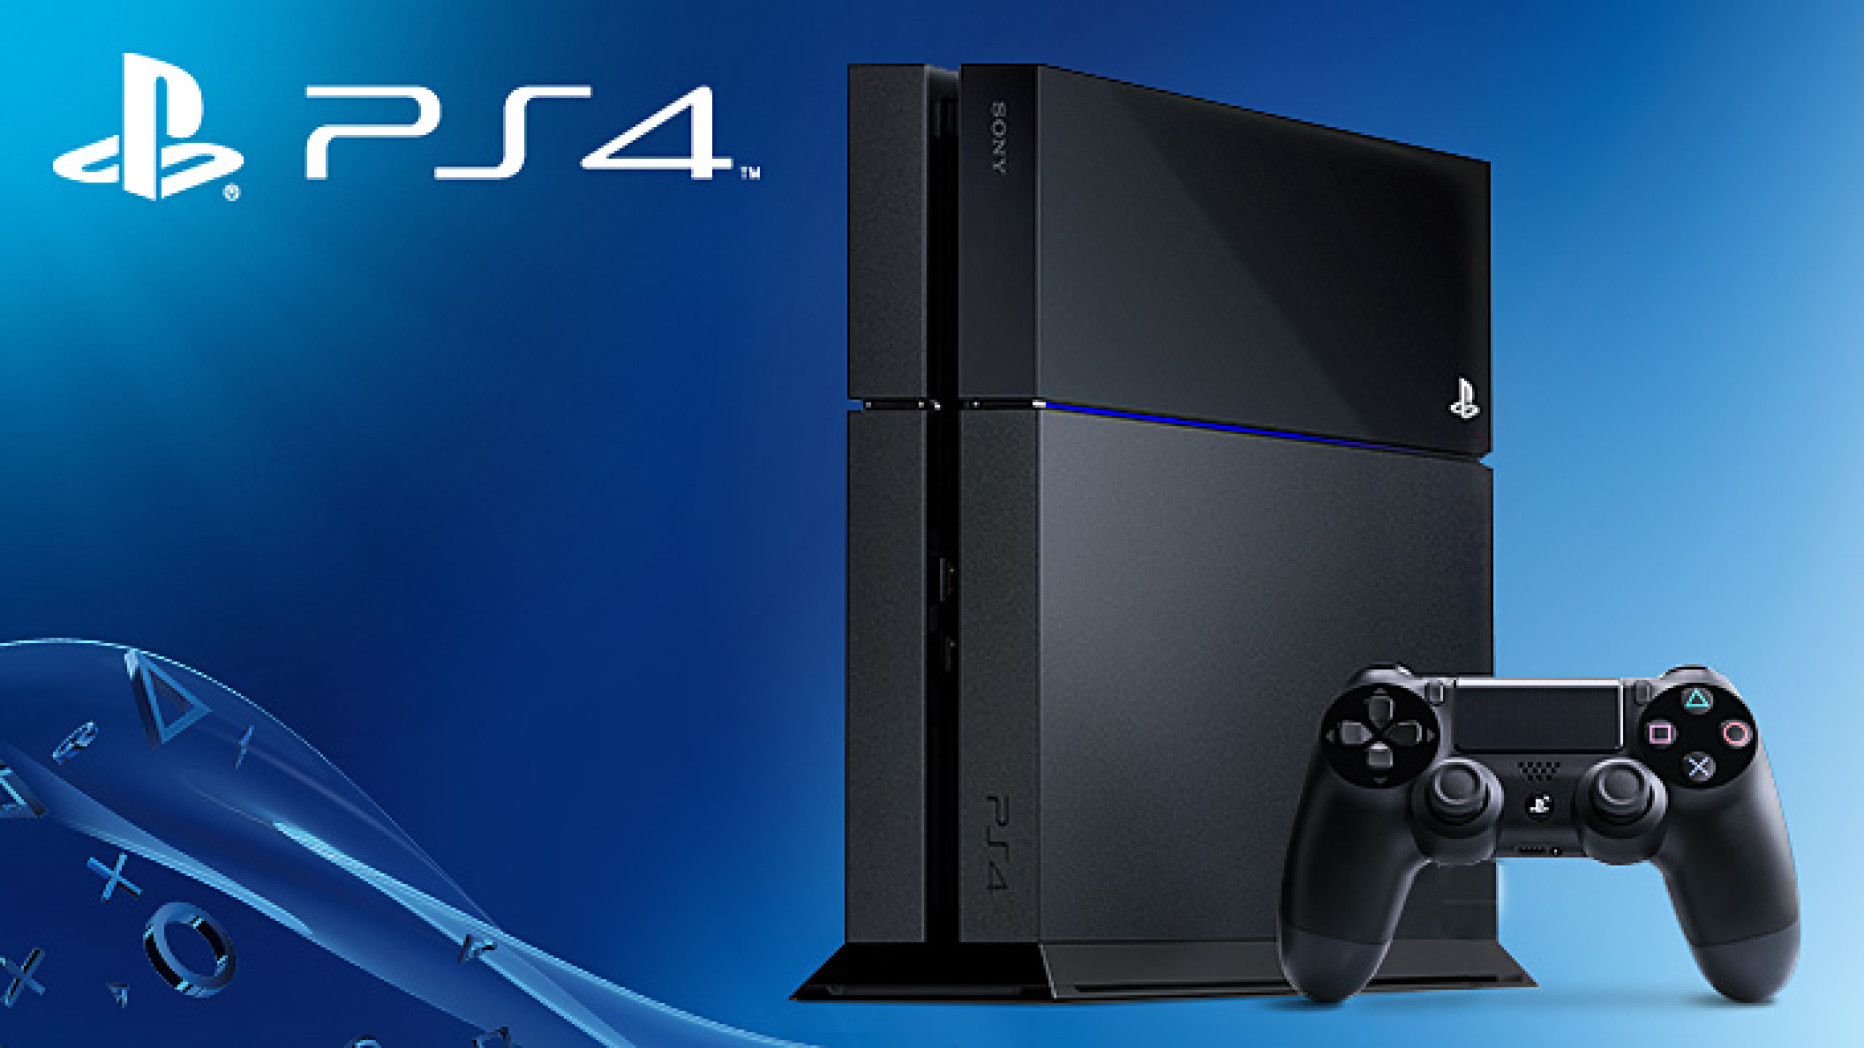 before upgrading to 4TB try to backup your PS4 data first